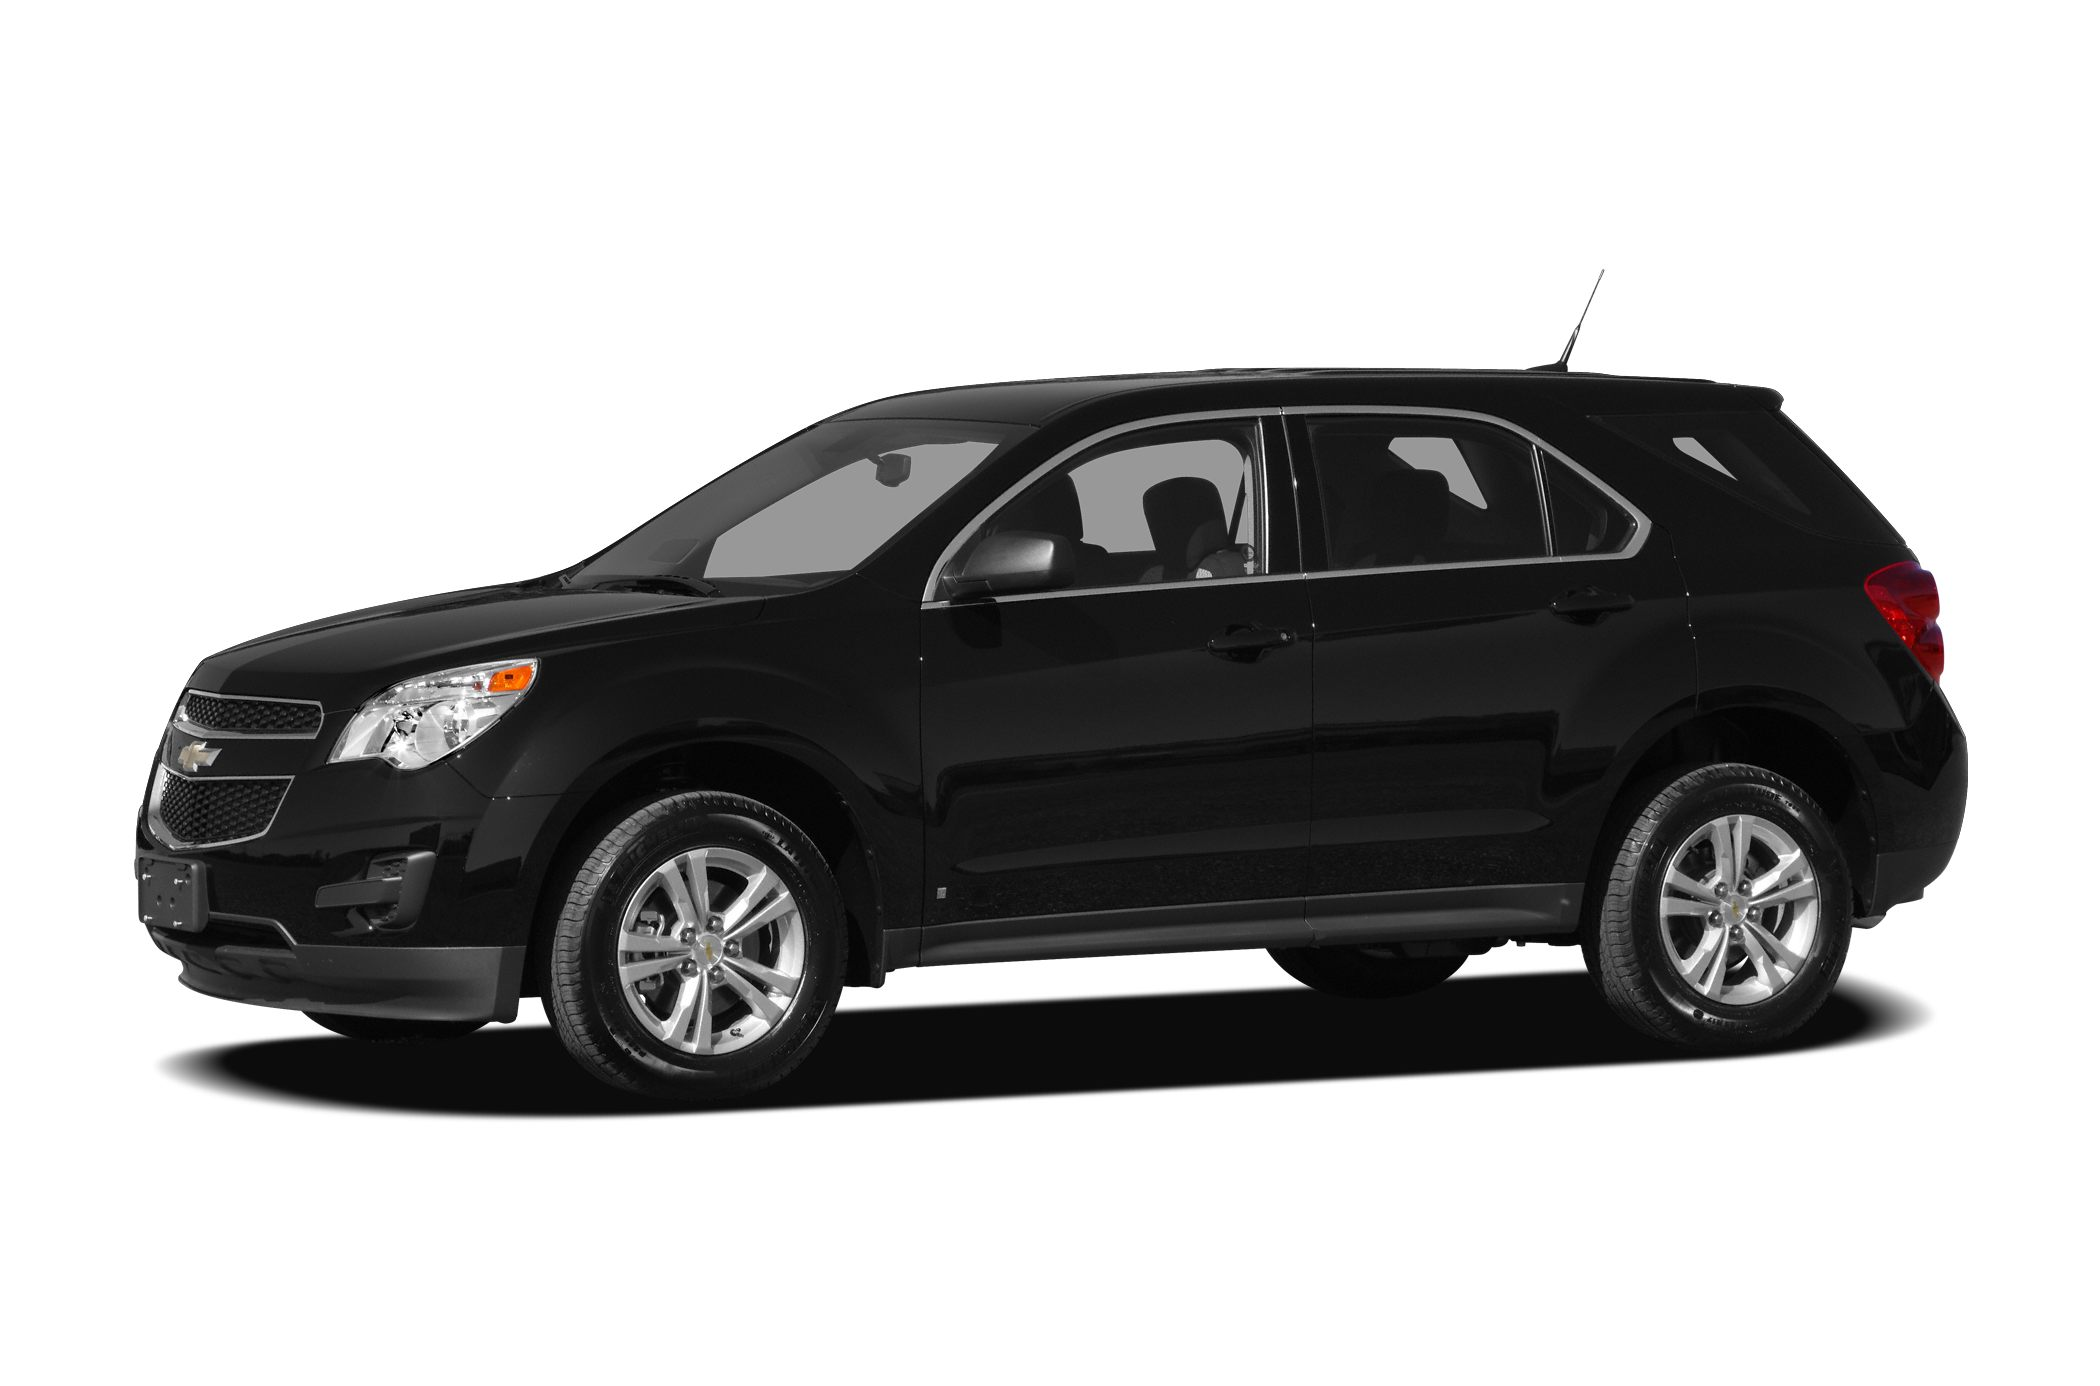 2010 Chevrolet Equinox LT SUV for sale in Kansas City for $17,990 with 68,573 miles